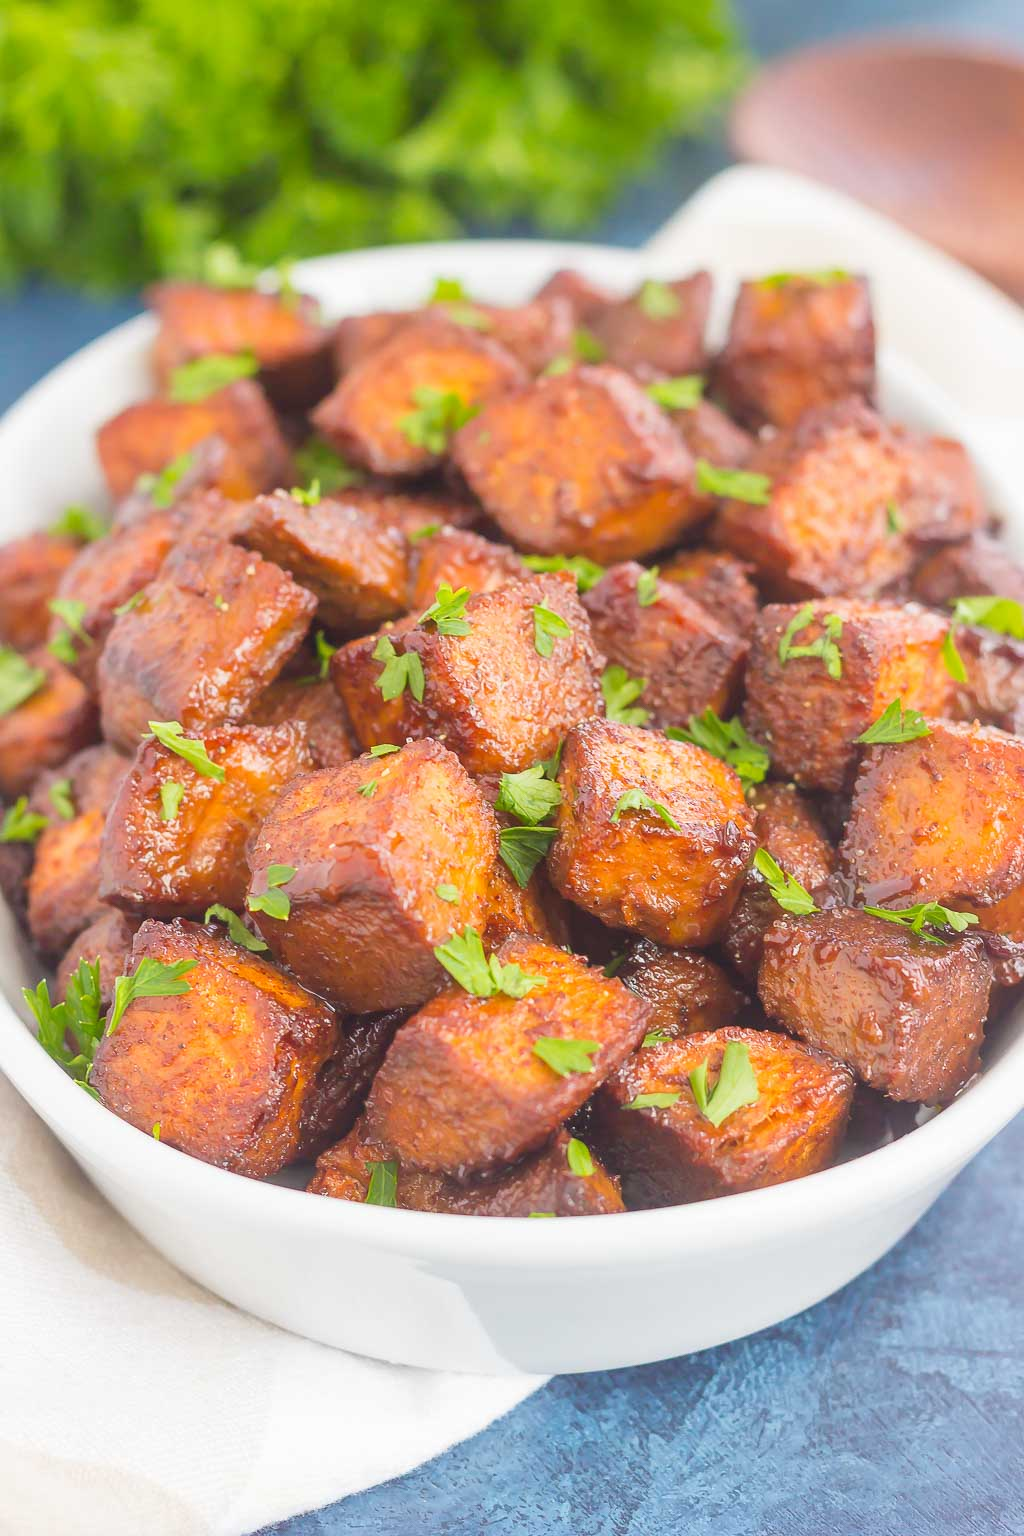 These Roasted Cinnamon Brown Sugar Sweet Potatoes make a deliciously simple side dish. Sweet cinnamon and brown sugar are tossed with sweet potatoes and roasted until crispy on the outside and tender on the inside! #sweetpotatoes #roastedsweetpotatoes #sweetpotatorecipe #cinnamonsweetpotatoes #brownsugarsweetpotatoes #roastedpotatoes #sidedish